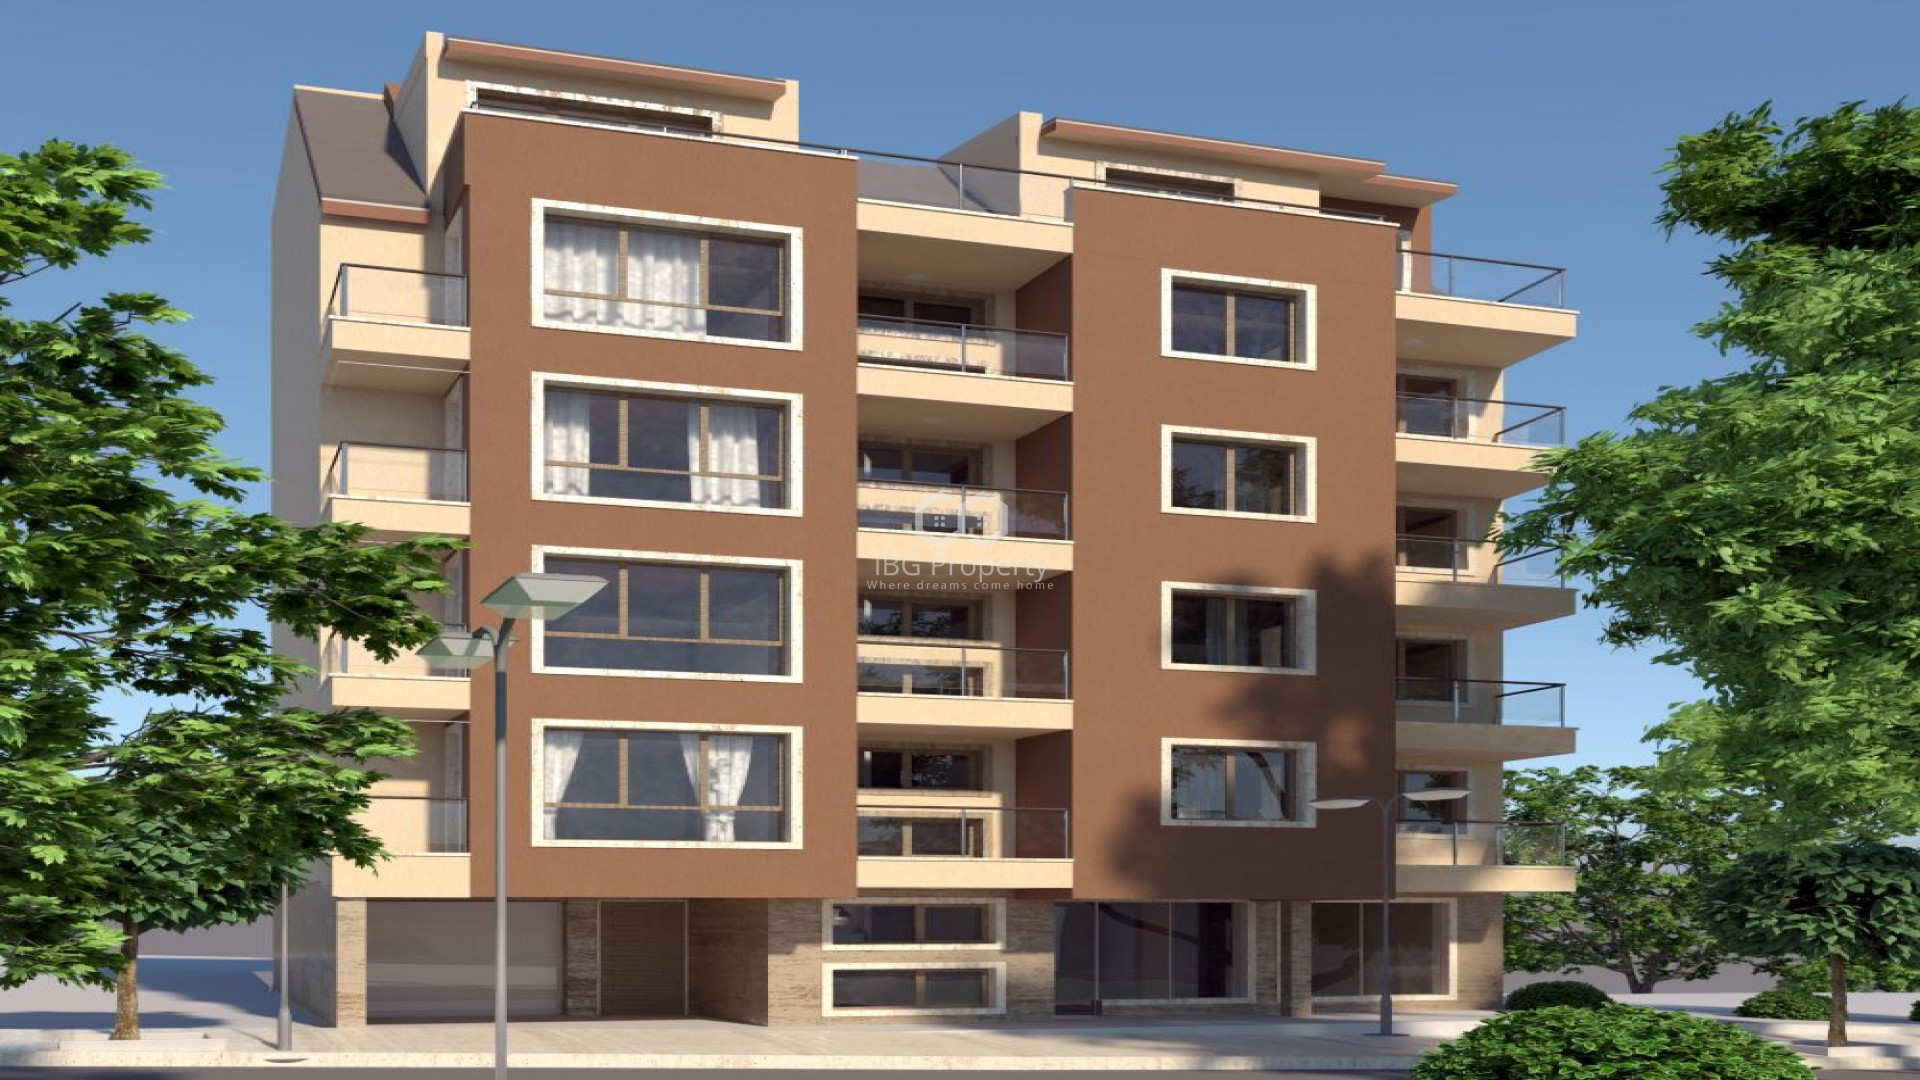 One bedroom apartment Kolhozen pazar Varna 61,69 m2